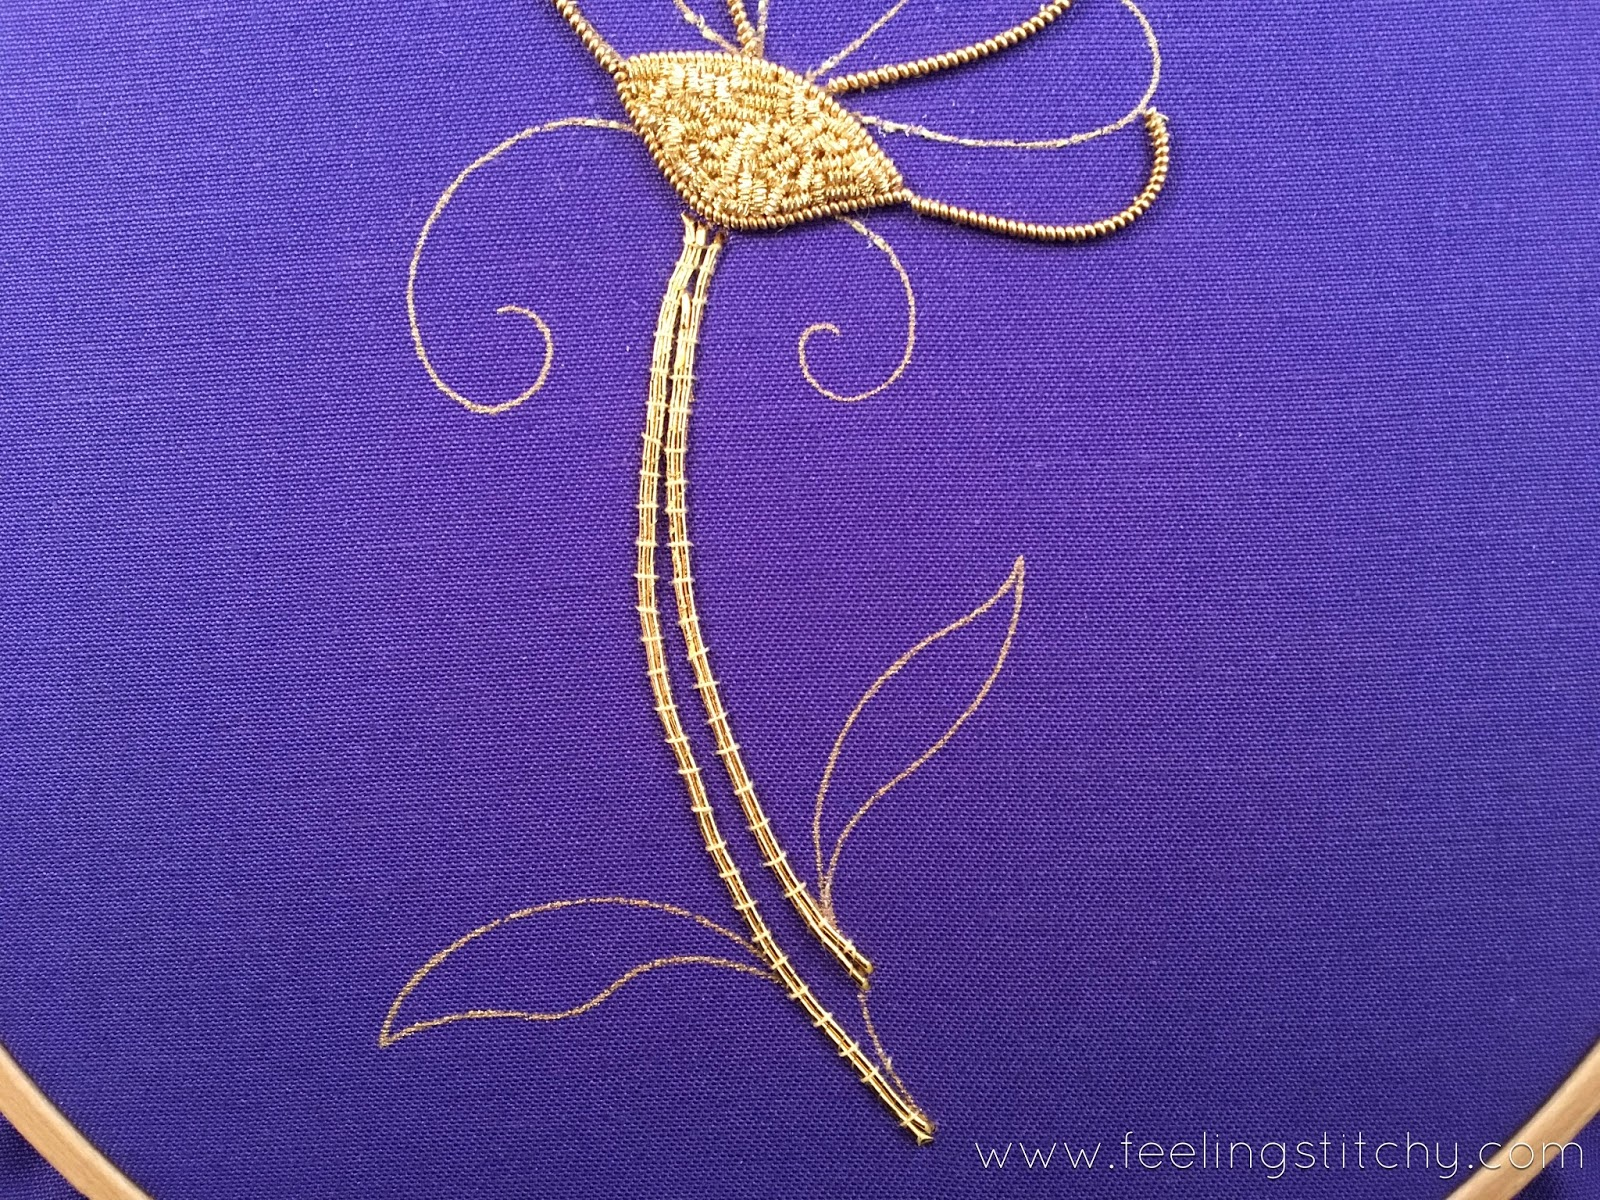 Goldwork Daisy Part 2 by Michelle for Feeling Stitchy